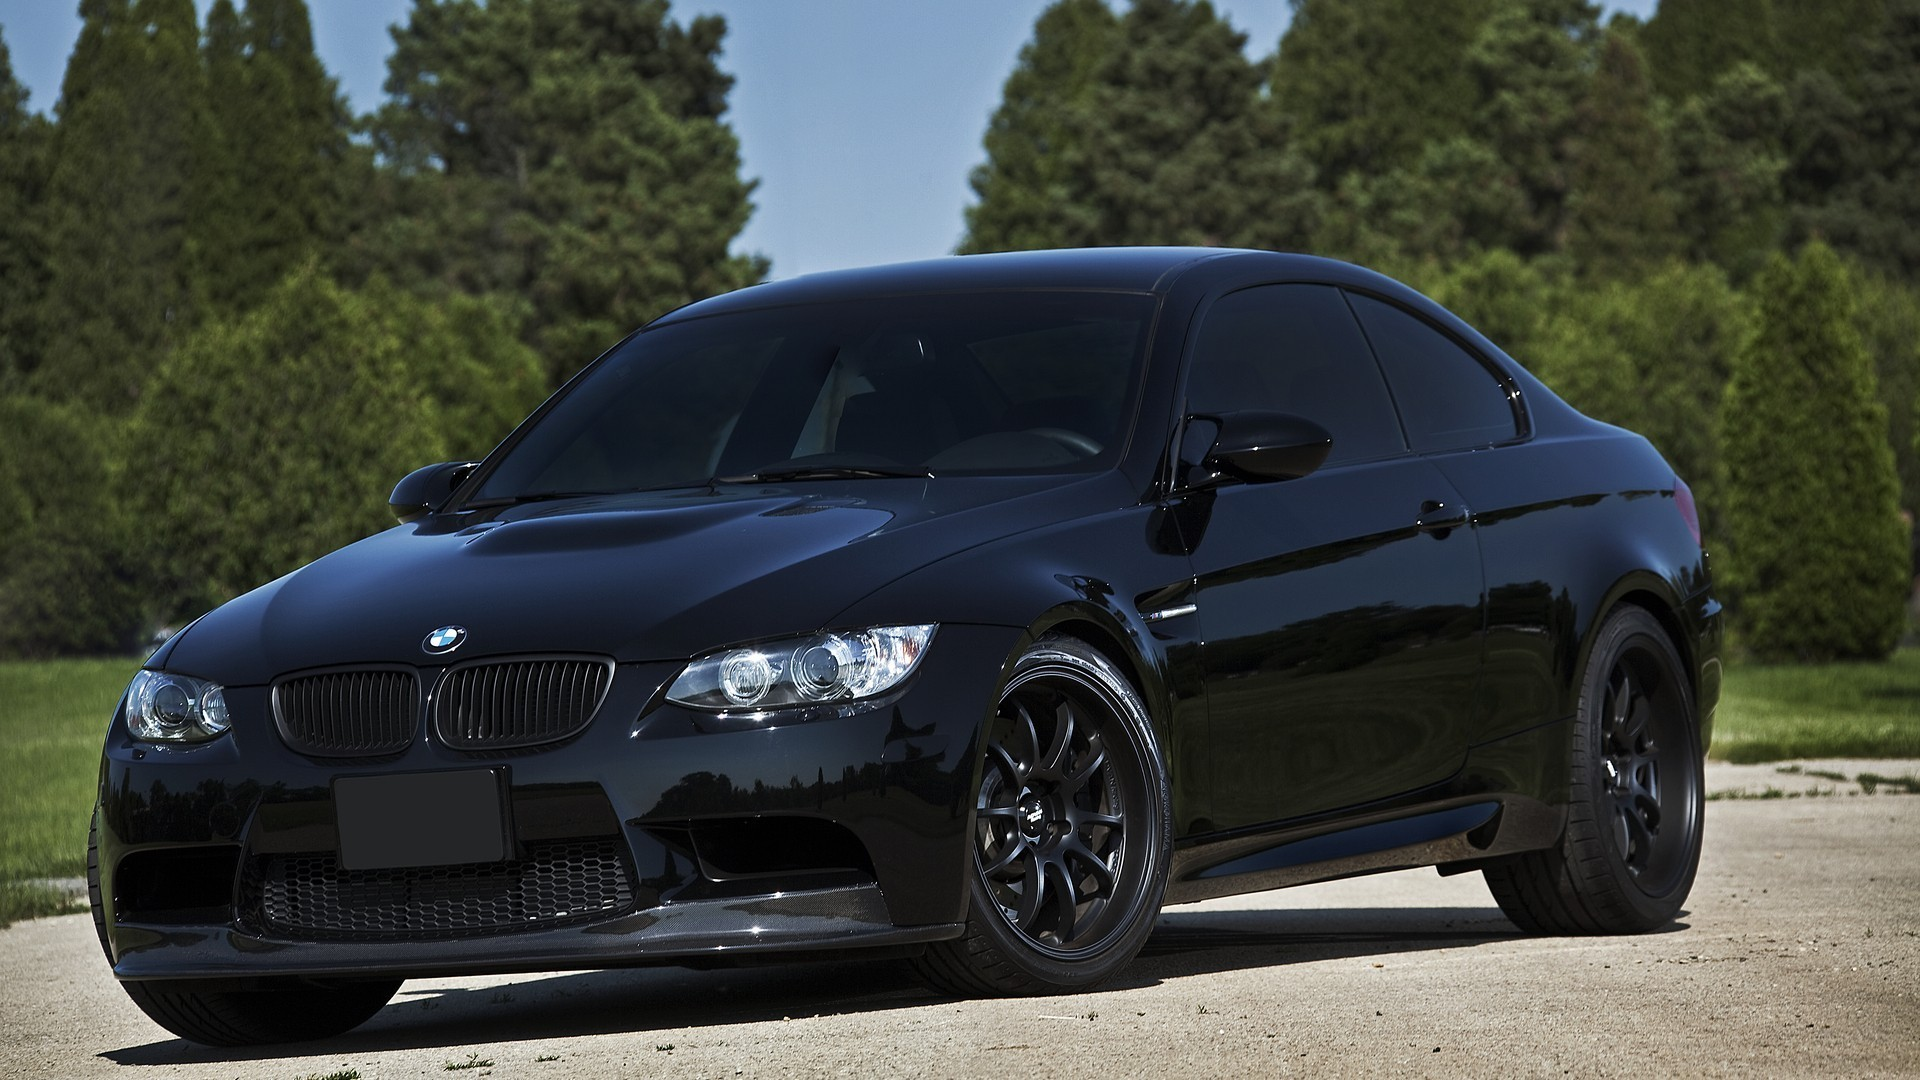 Bmw M3 Germany Black Cars Nature Wallpaper